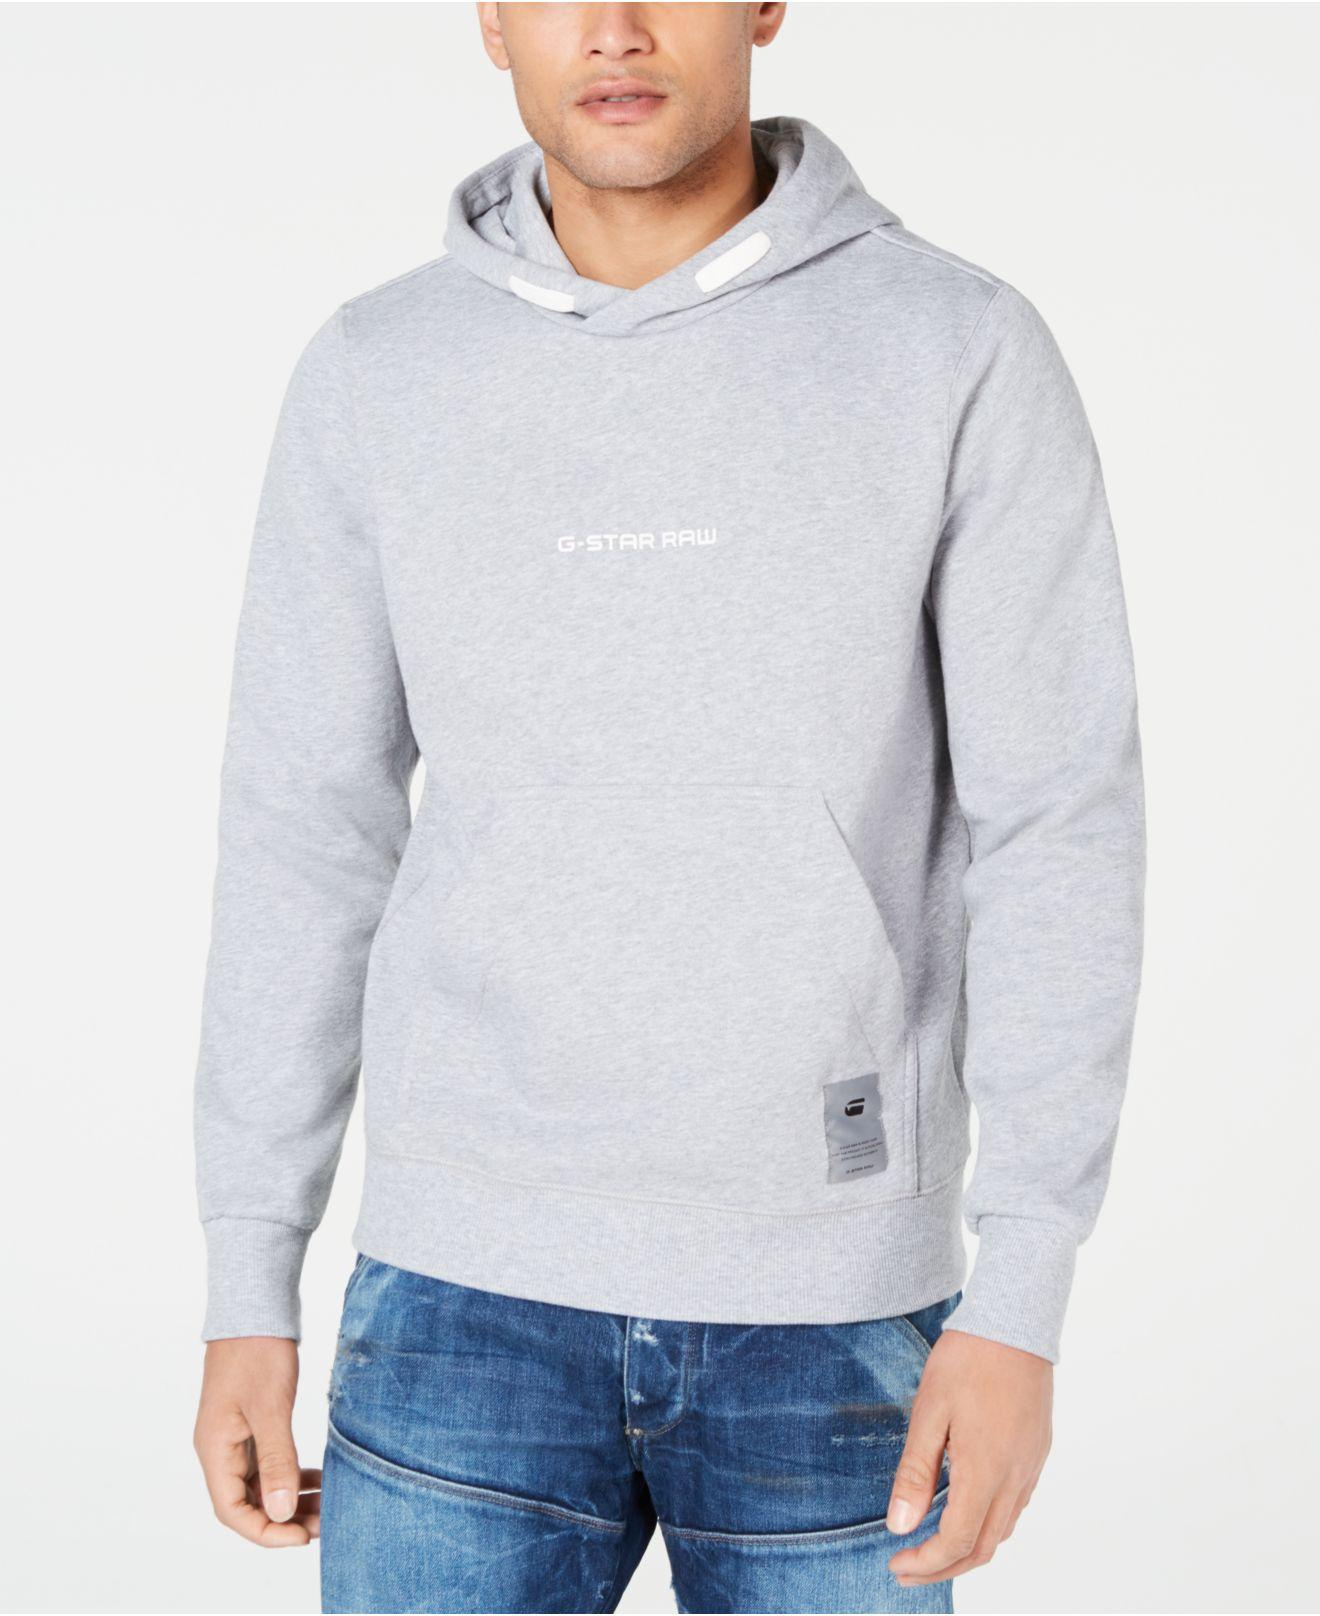 82bda28150d Lyst - G-Star Raw Logo Hoodie, Created For Macy's in Gray for Men